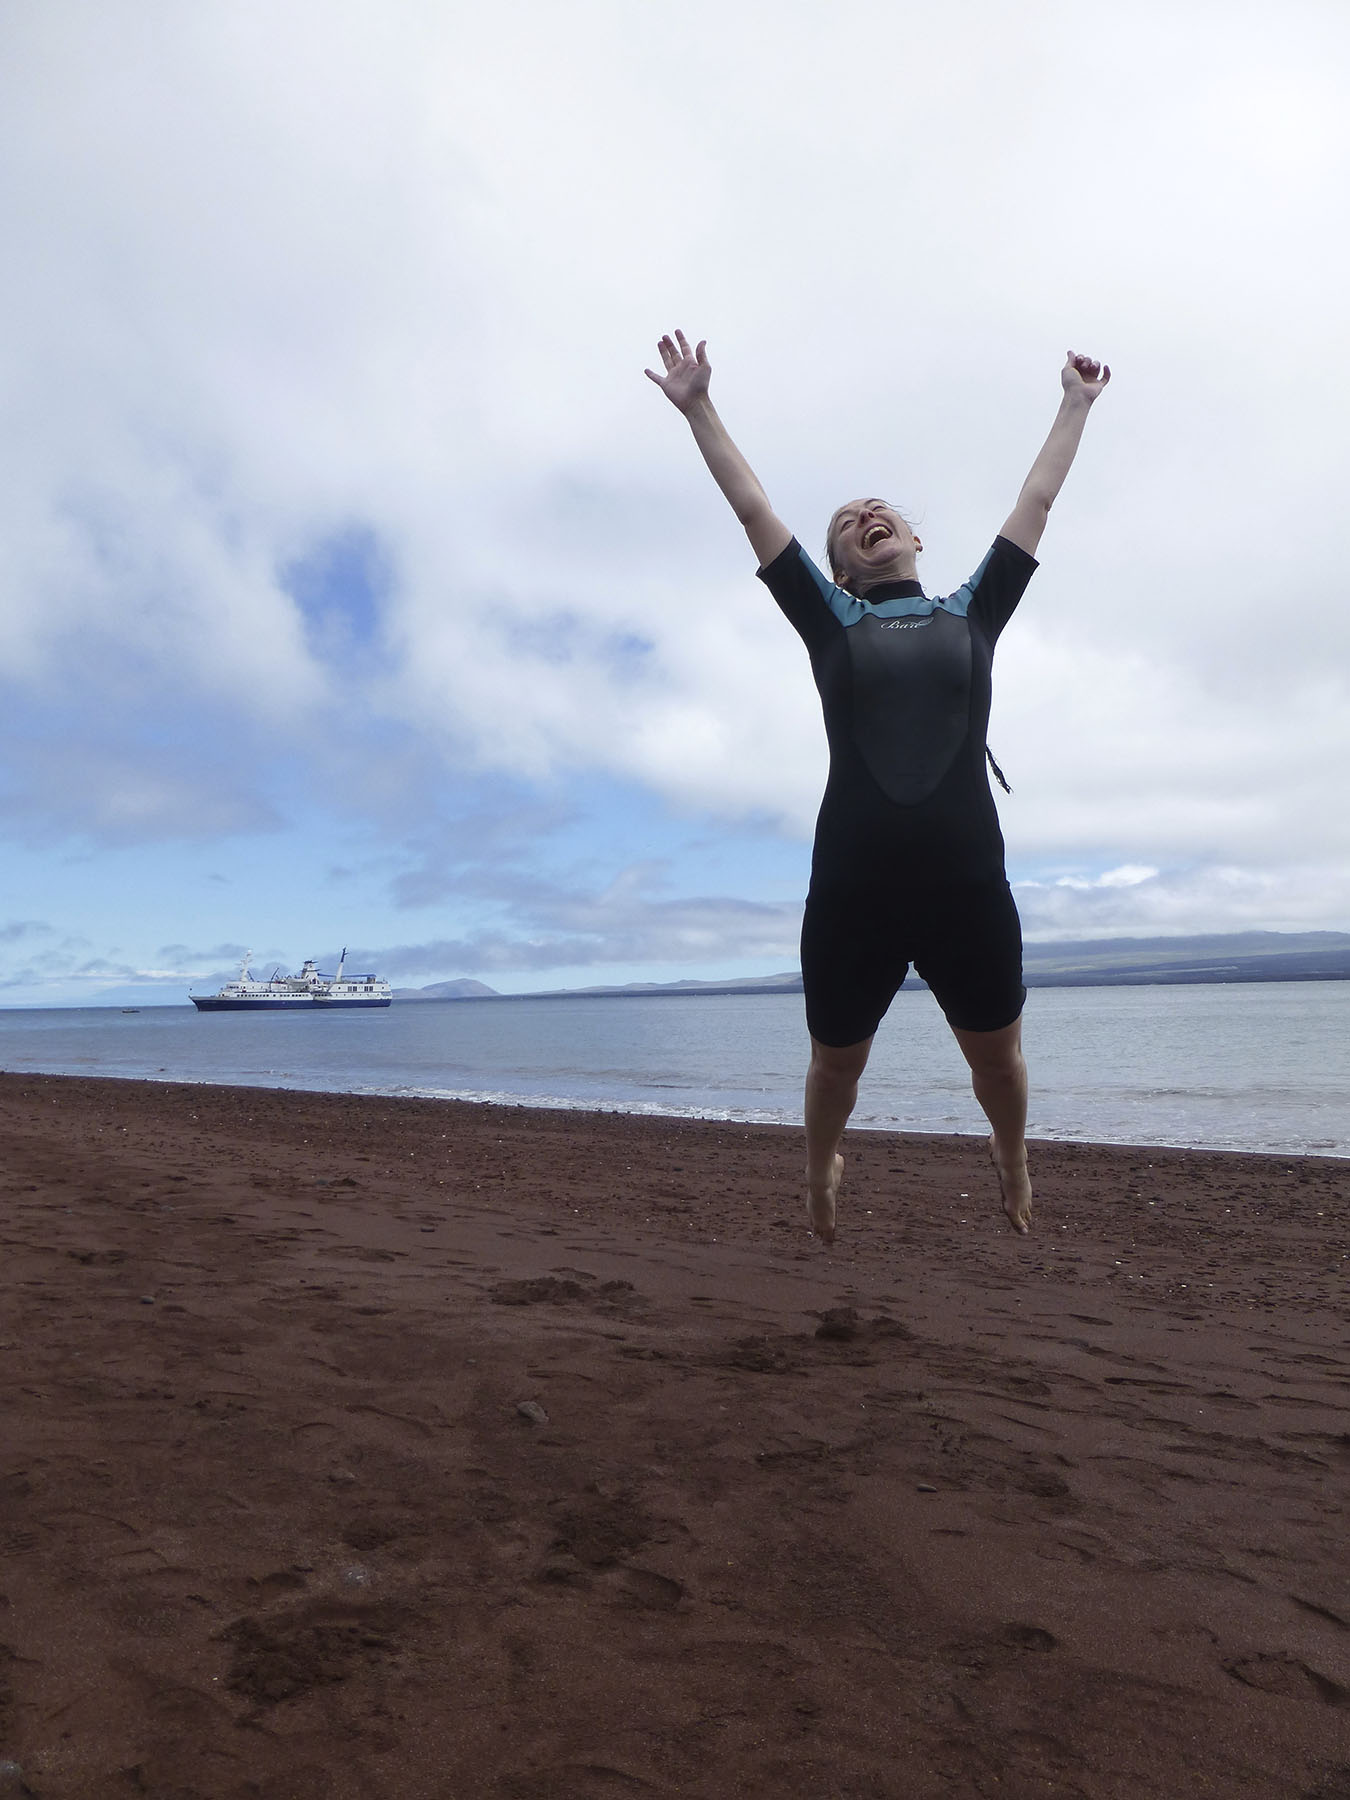 Jumping For Joy To Be On Dry Land!